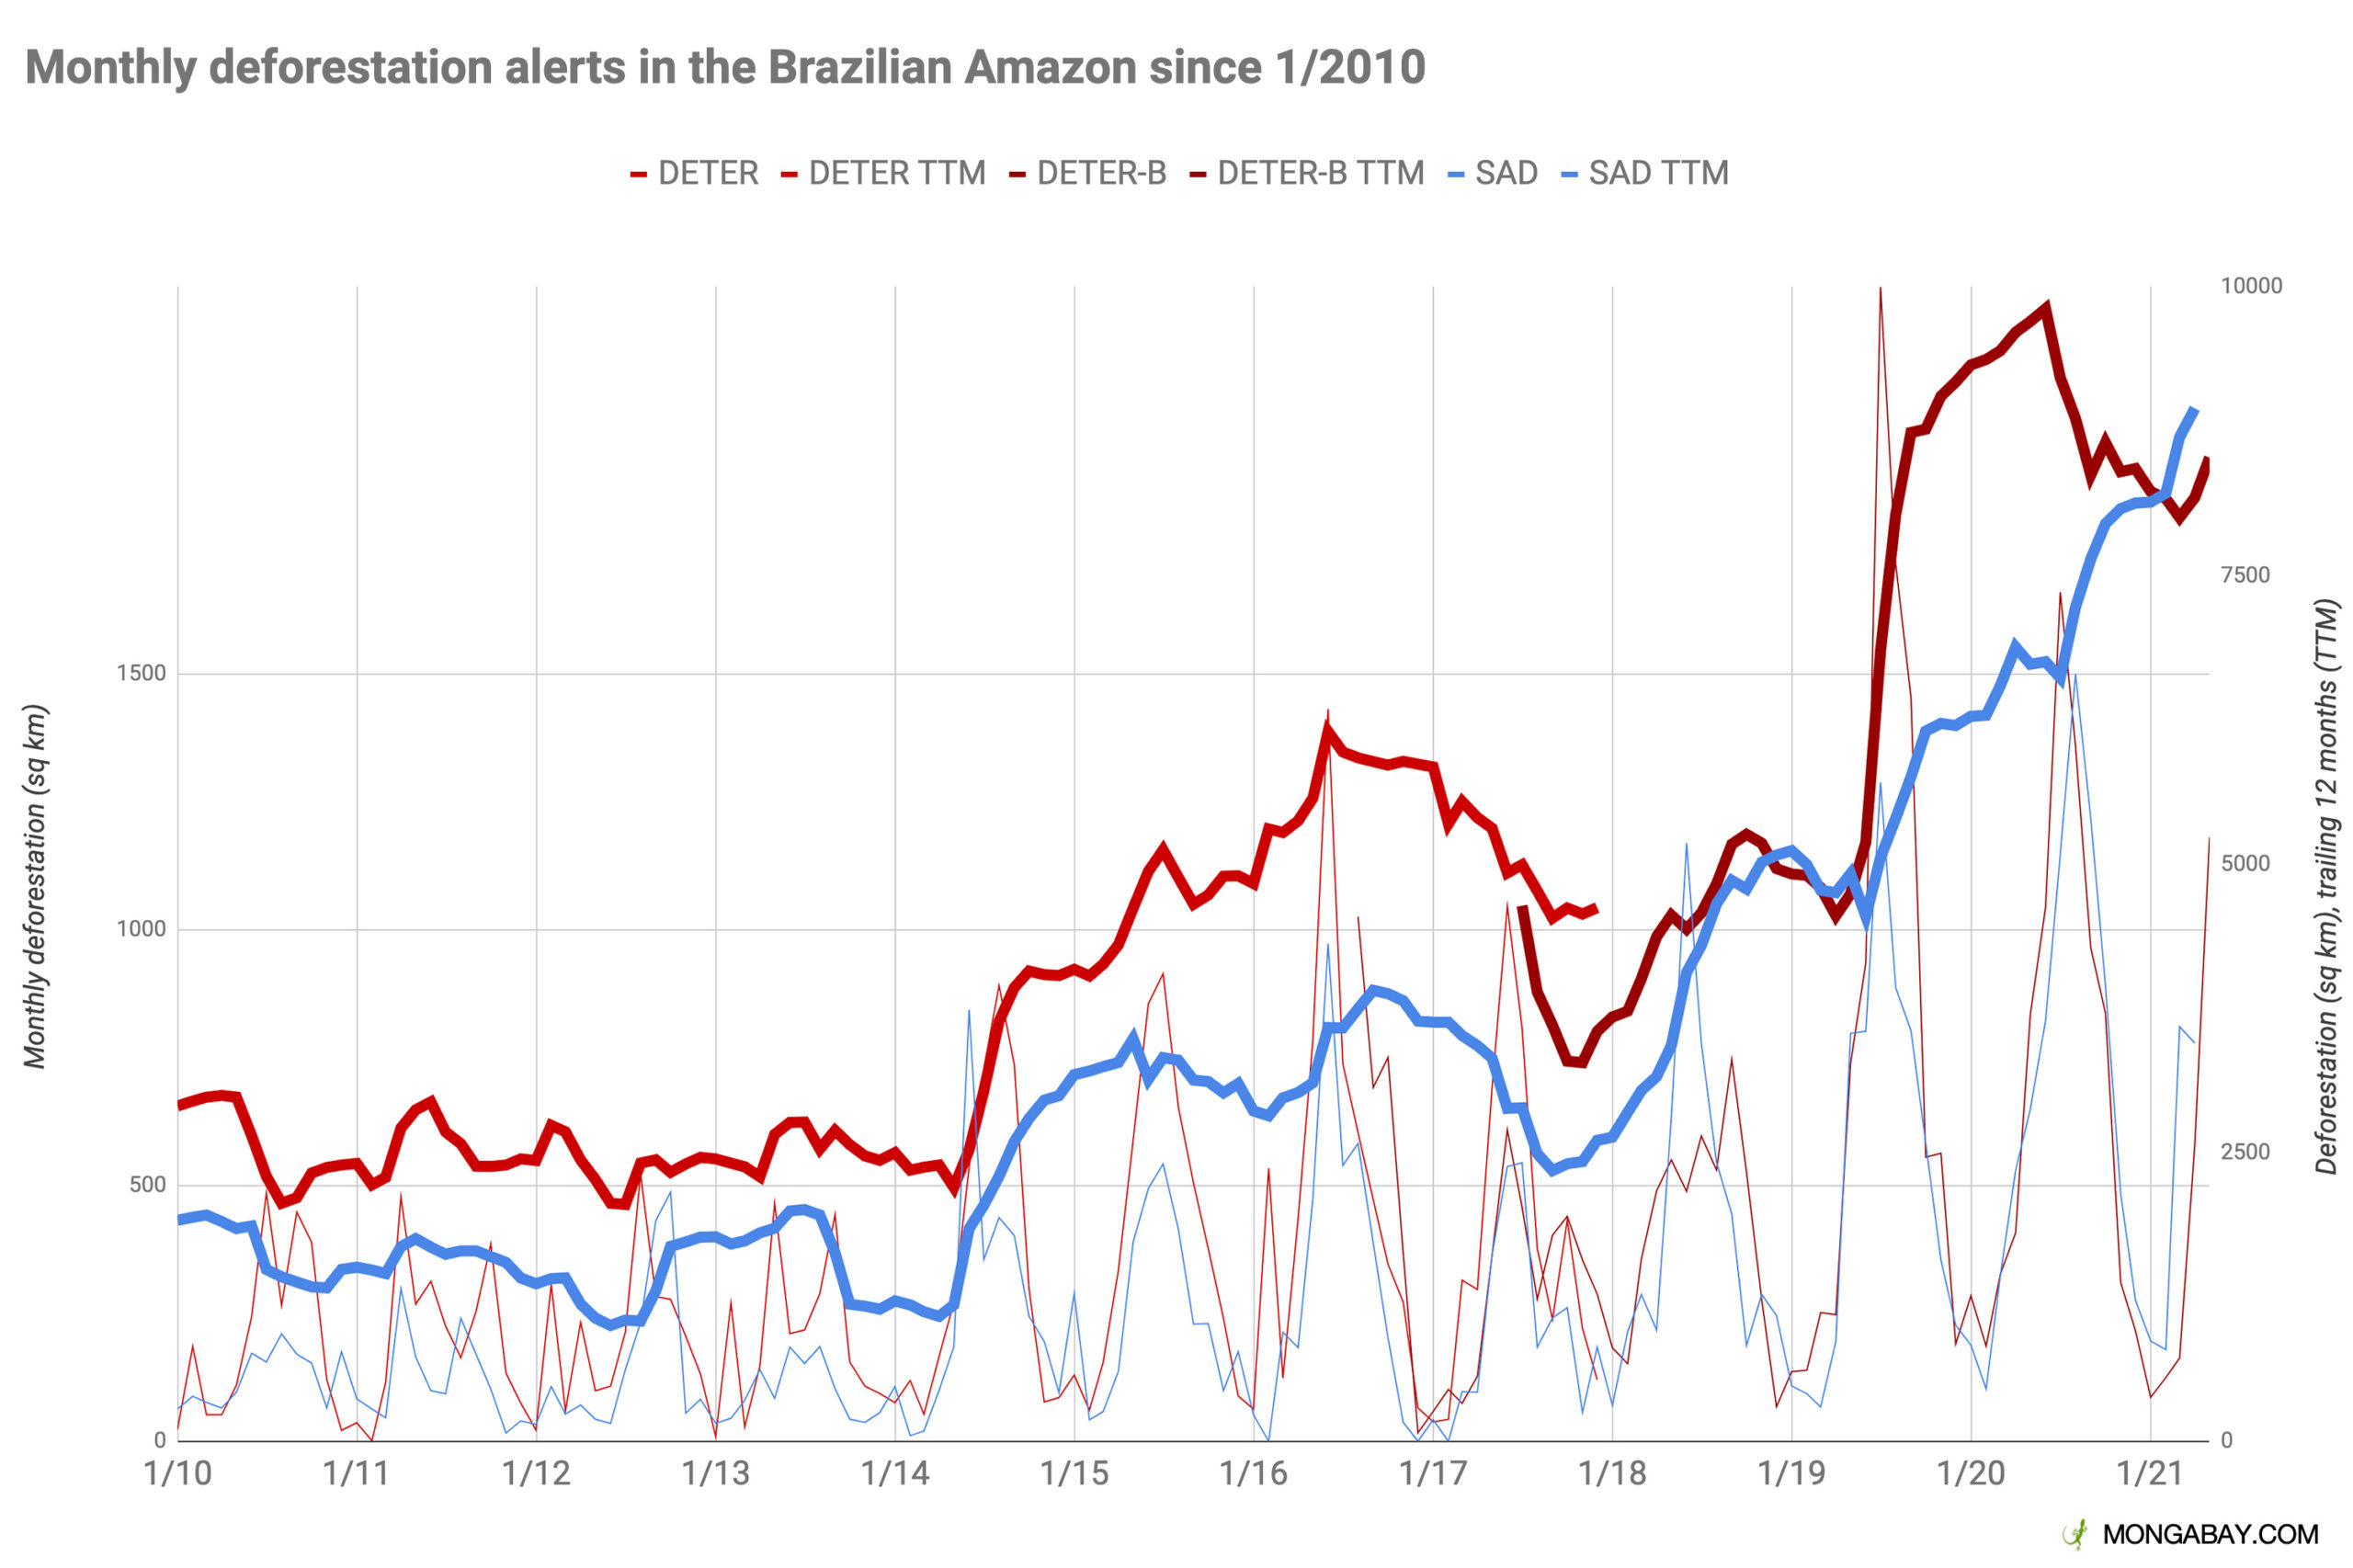 Monthly deforestation alert data from INPE's DETER system and Imazon's SAD system. Imazon independently tracks deforestation to provide a check against official Brazilian government data.